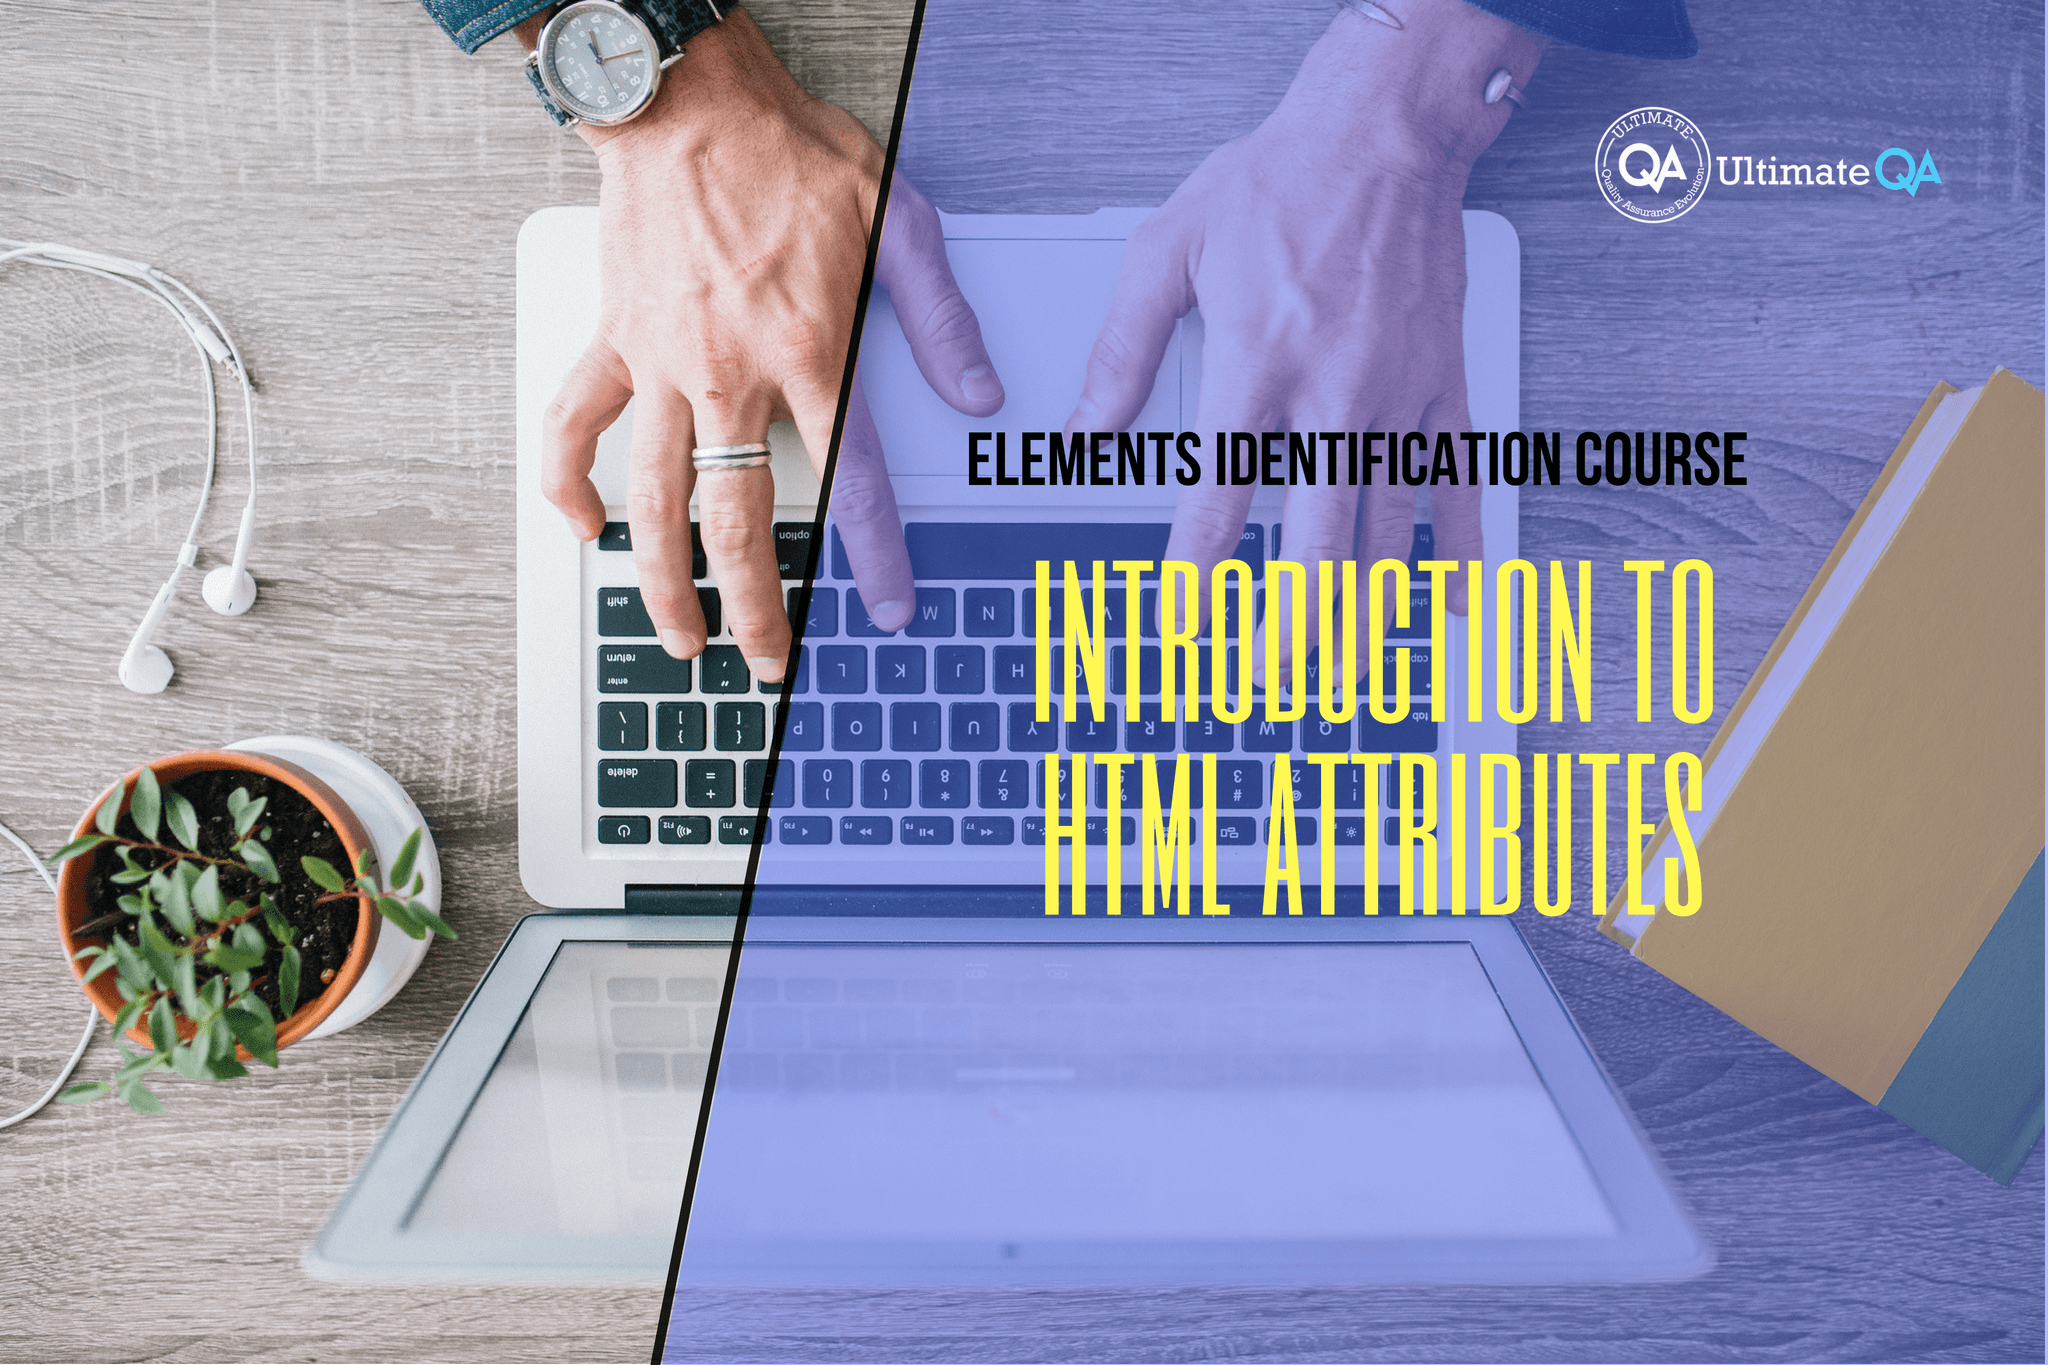 Selenium Webdriver Elements Identification Course - Introduction to